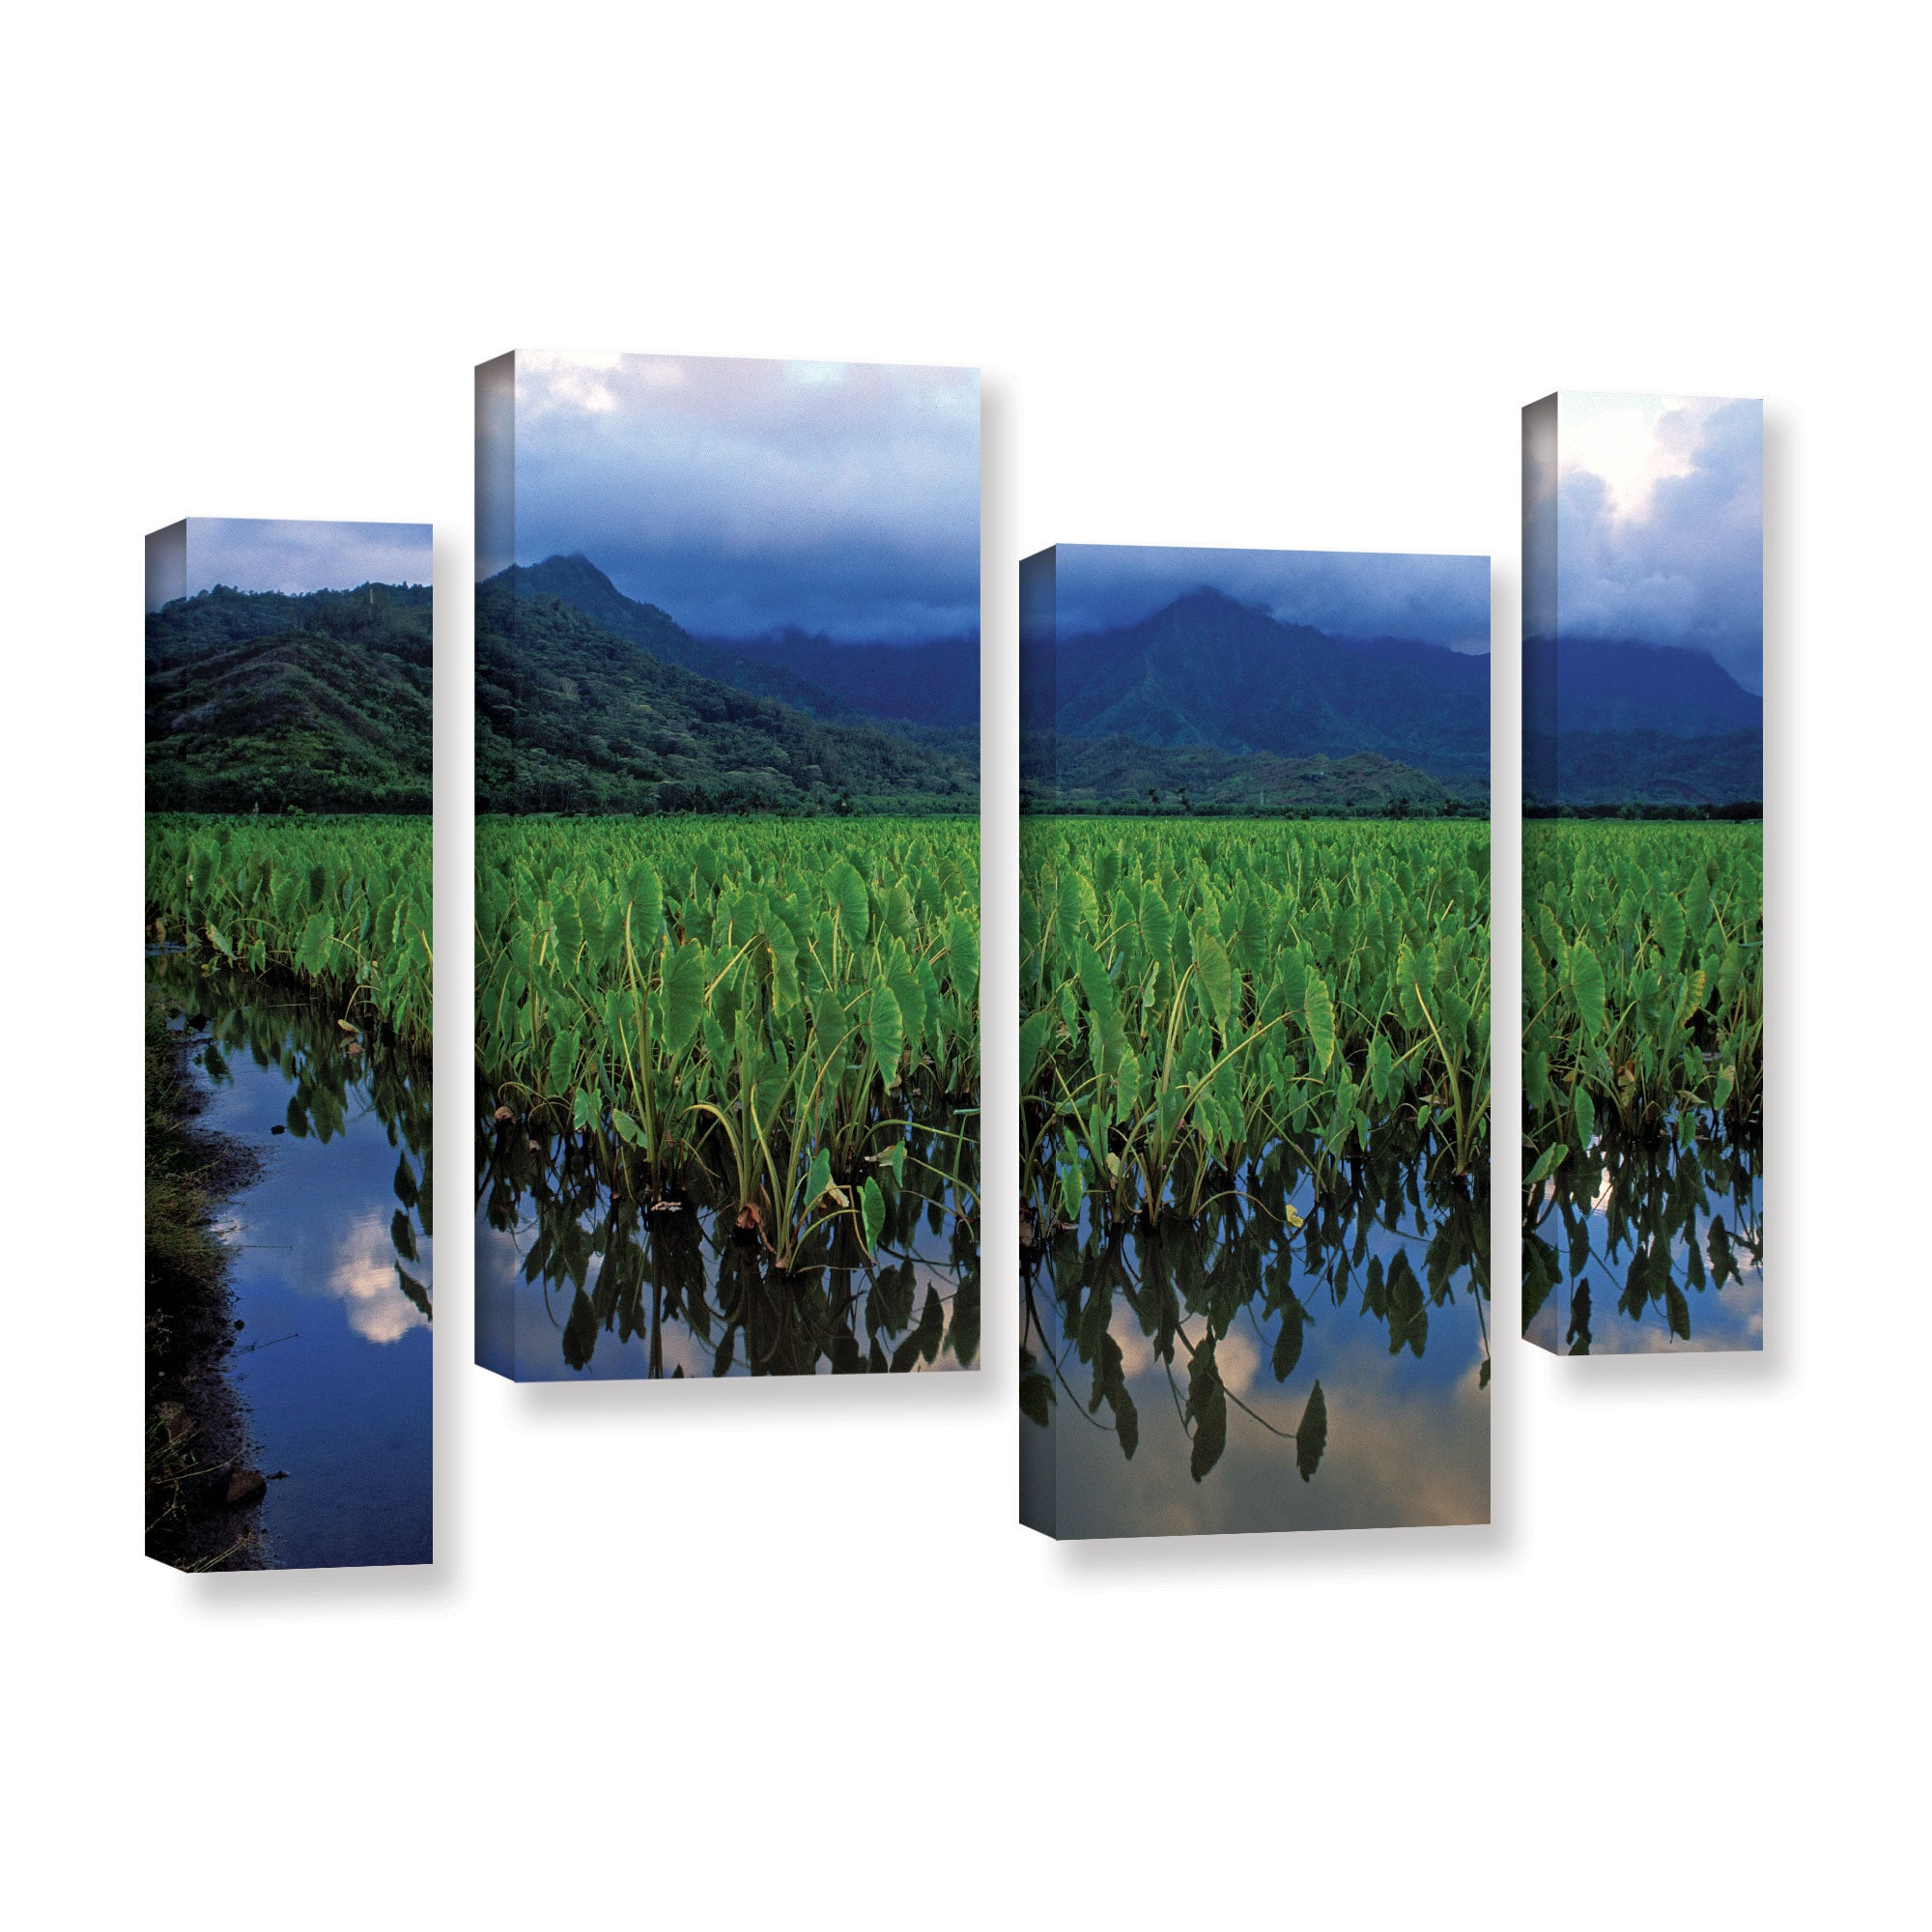 Shop Artwall Kathy Yates S Kauai Taro Field 4 Piece Gallery Wrapped Canvas Staggered Set Multi On Sale Overstock 11326584